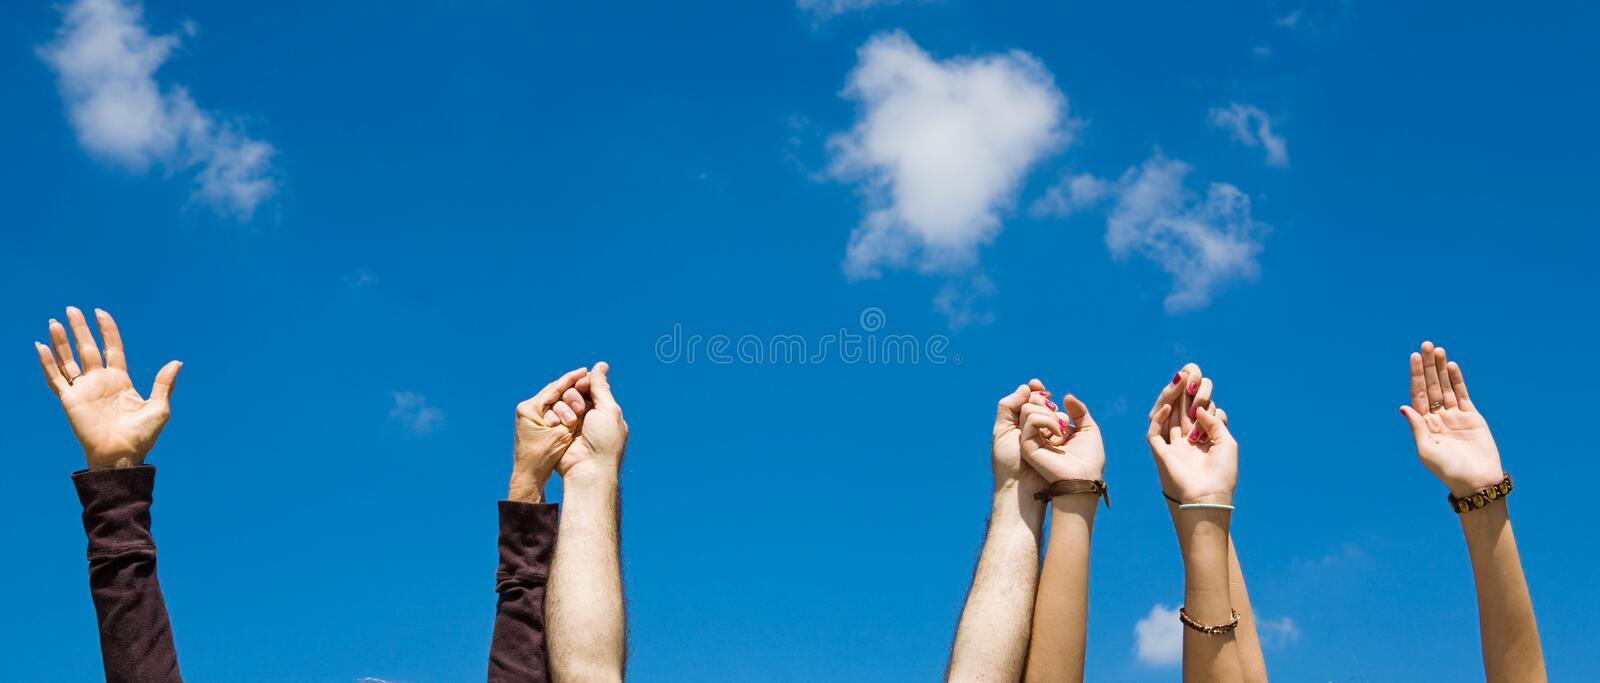 Holding Hands & Sky Banner stock photography